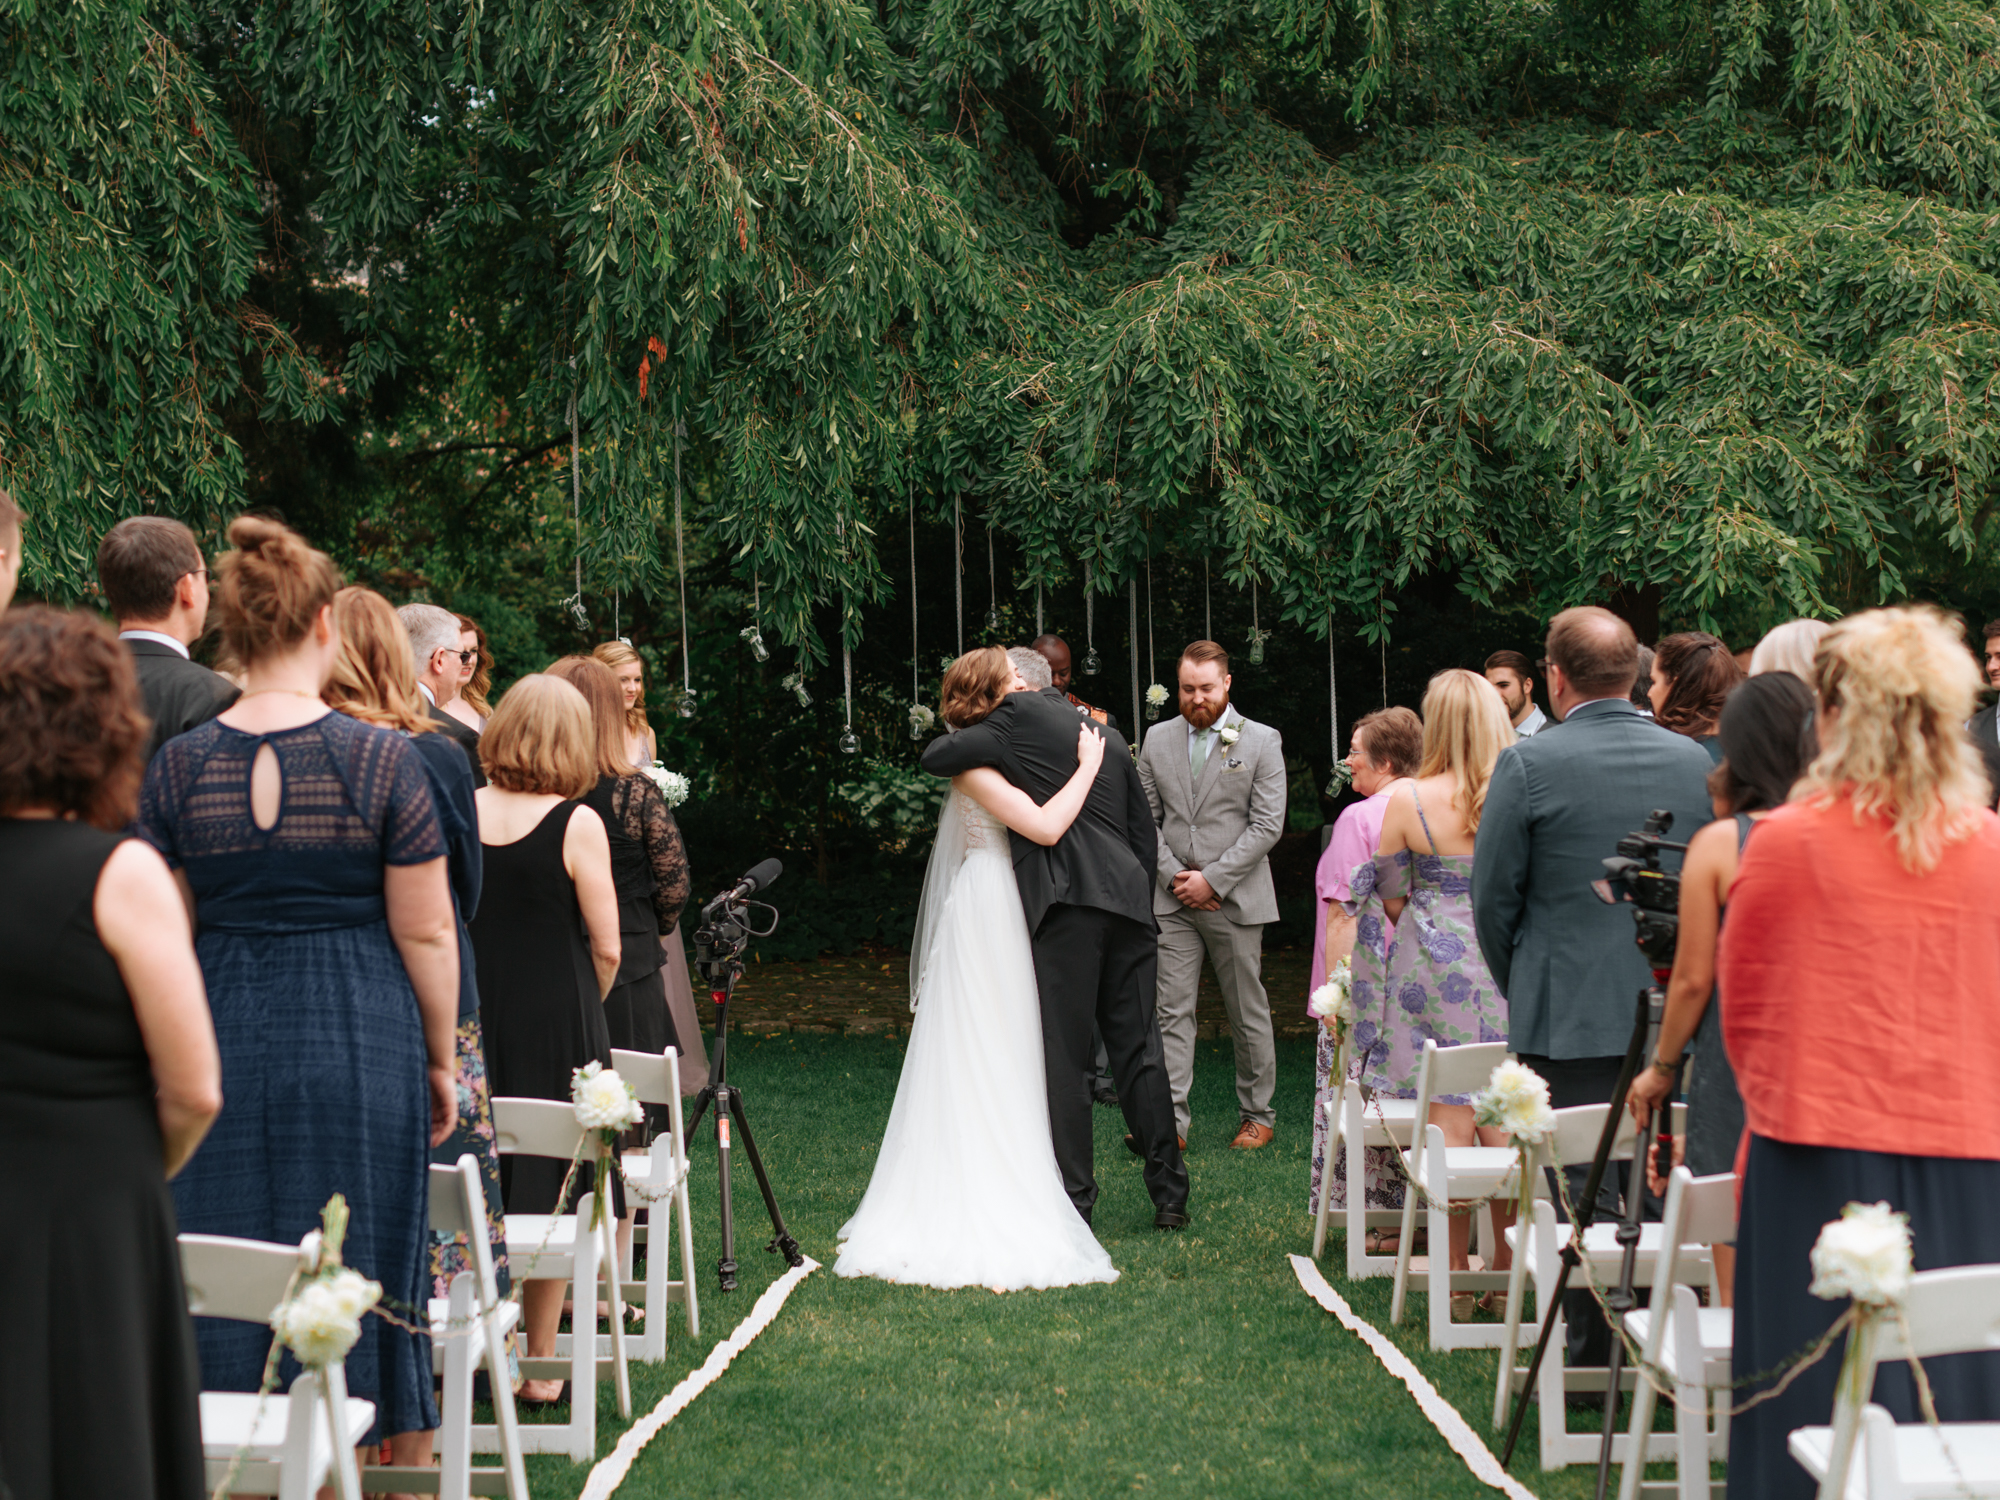 Stolen Glimpses Seattle Wedding Photographer Hidden Meadows Wedding 55.jpg